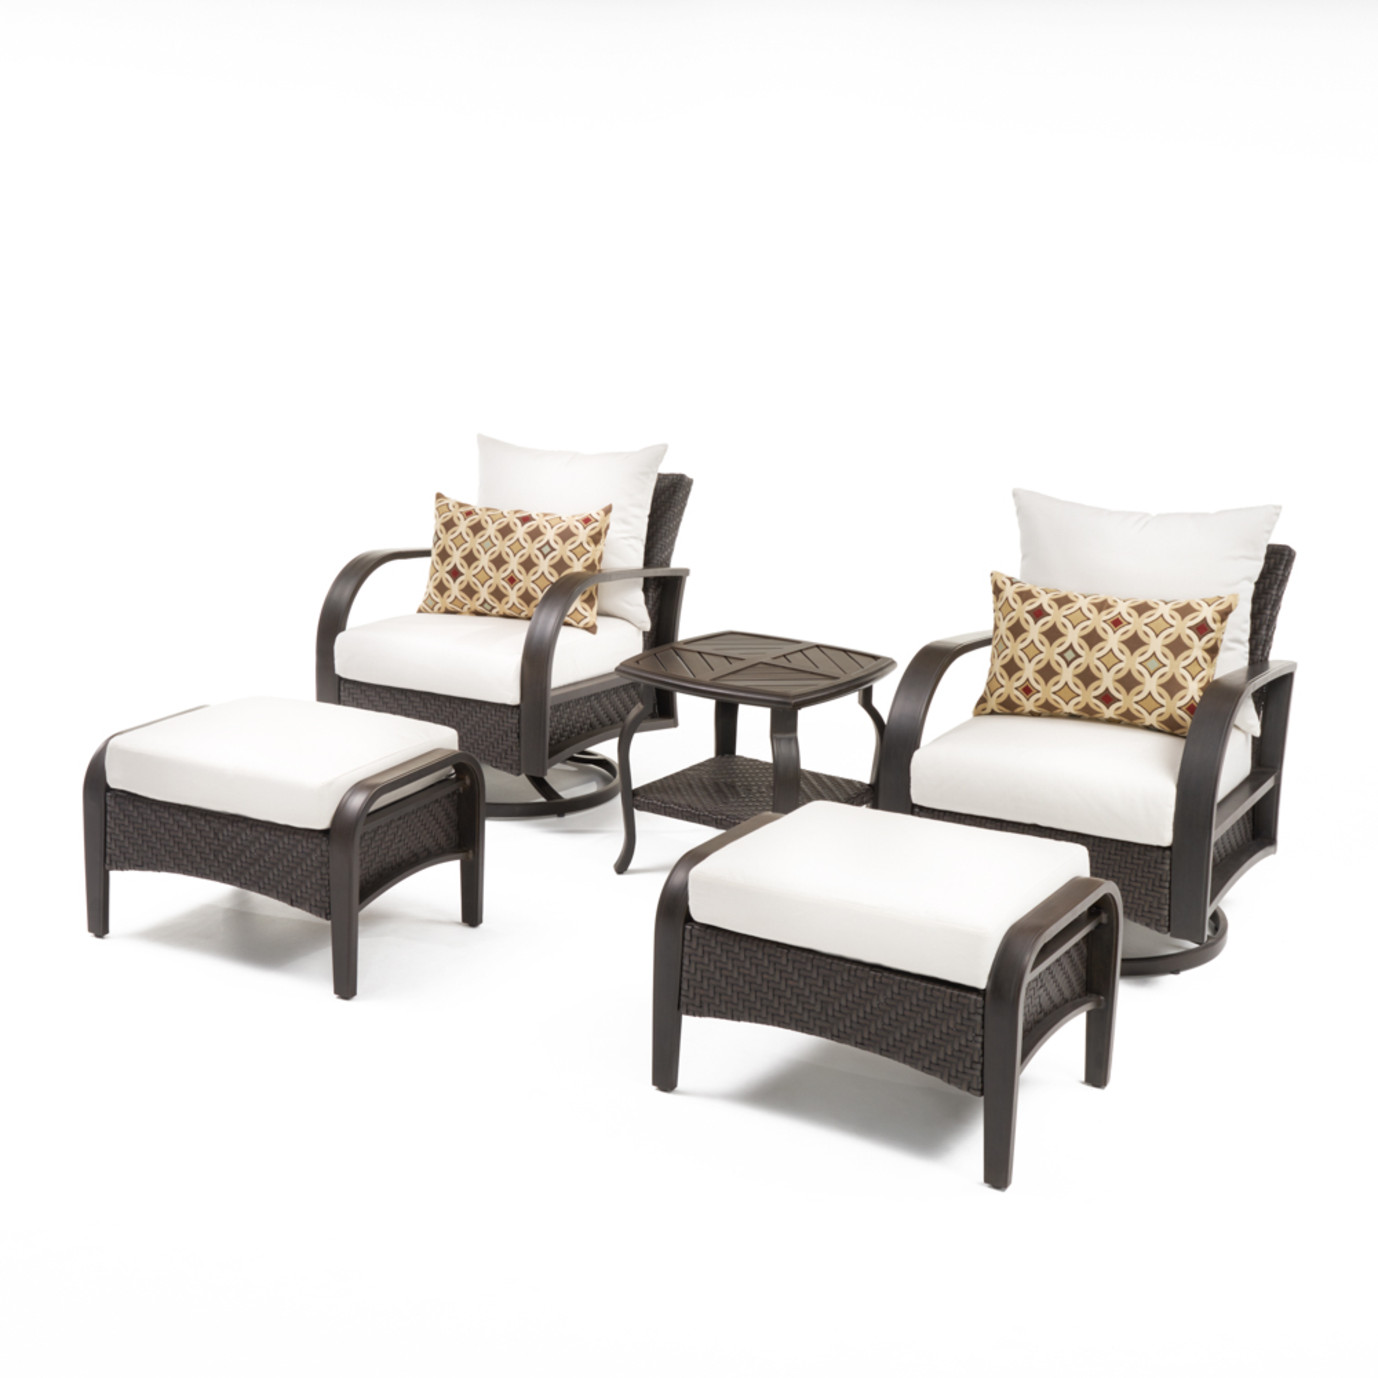 Barcelo™ 5pc Motion Club & Ottoman Set - Moroccan Cream